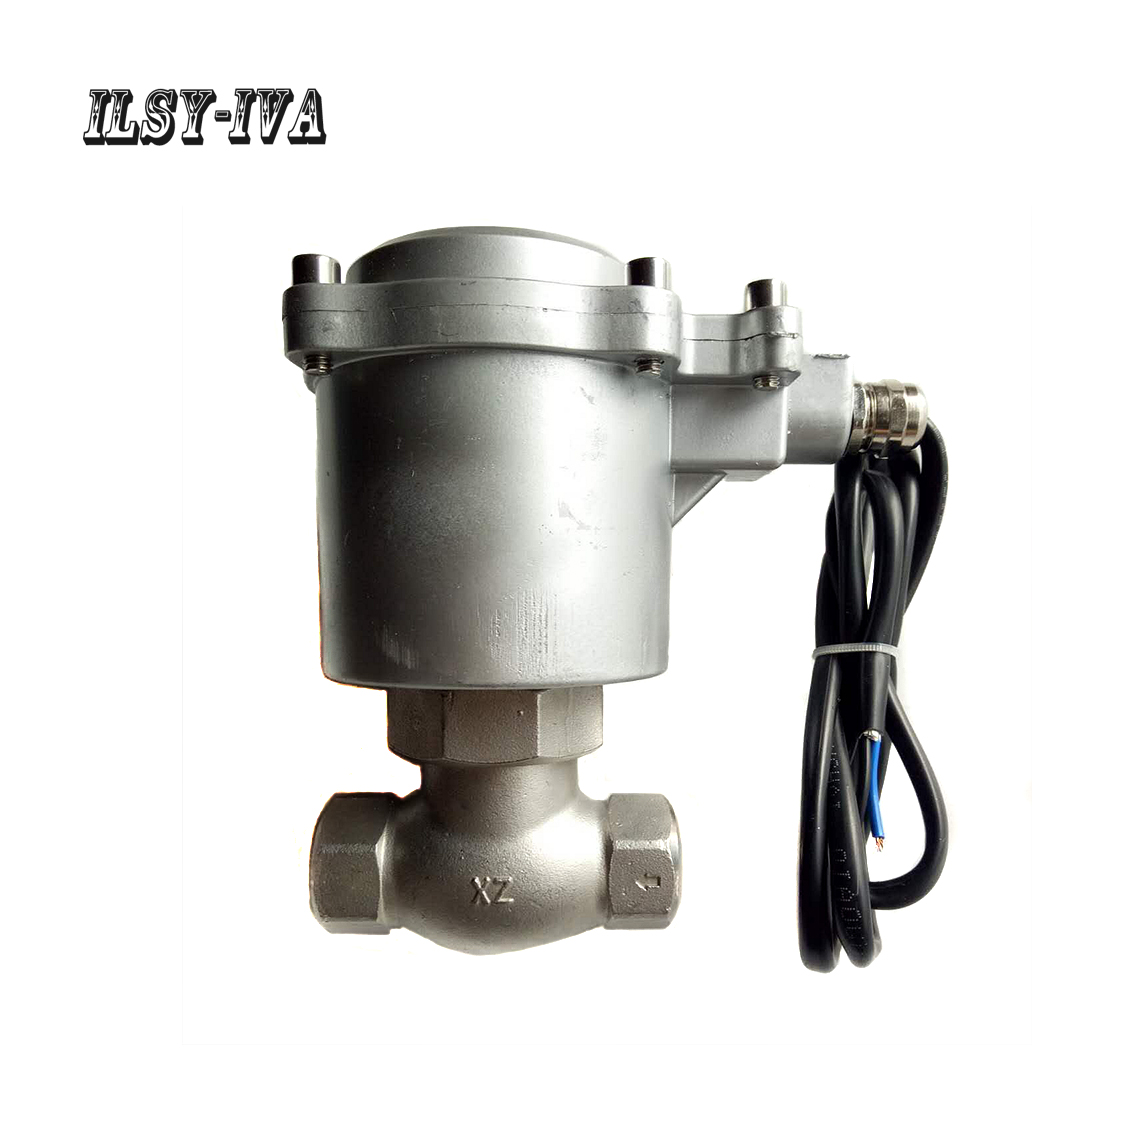 AC110V/AC220V Explosion proof type stainless steel electromagnetic valve for micro methane combustion machine